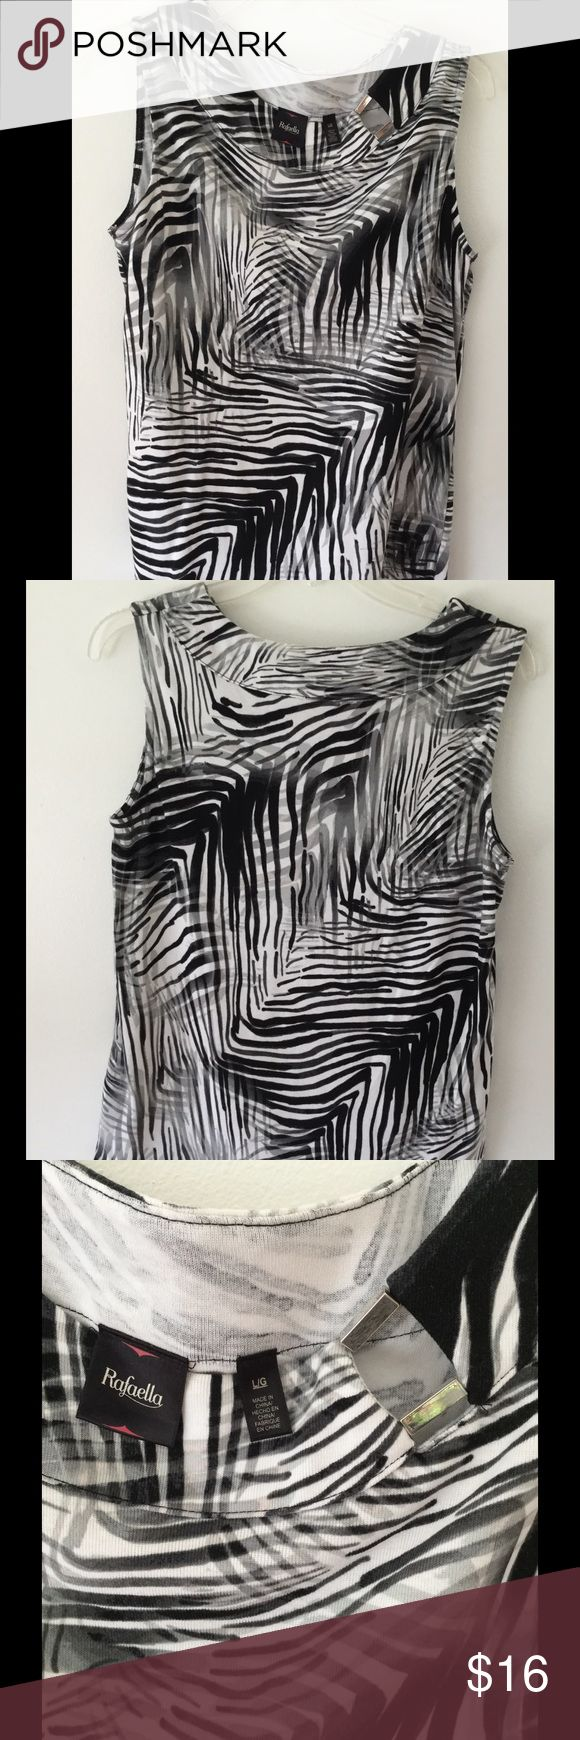 Rafaella black & white sleeveless top size large Price reduced! Beautiful black and white Rafaela sleeveless shirt with metal accent at neckline (shown in last picture). Size large. 100% cotton. Like new. Only wore 2/3 times. Pair with black leggings or shorts for a classic look. Very comfortable and cool for hot summer days. Runs slightly small. Rafaella Tops